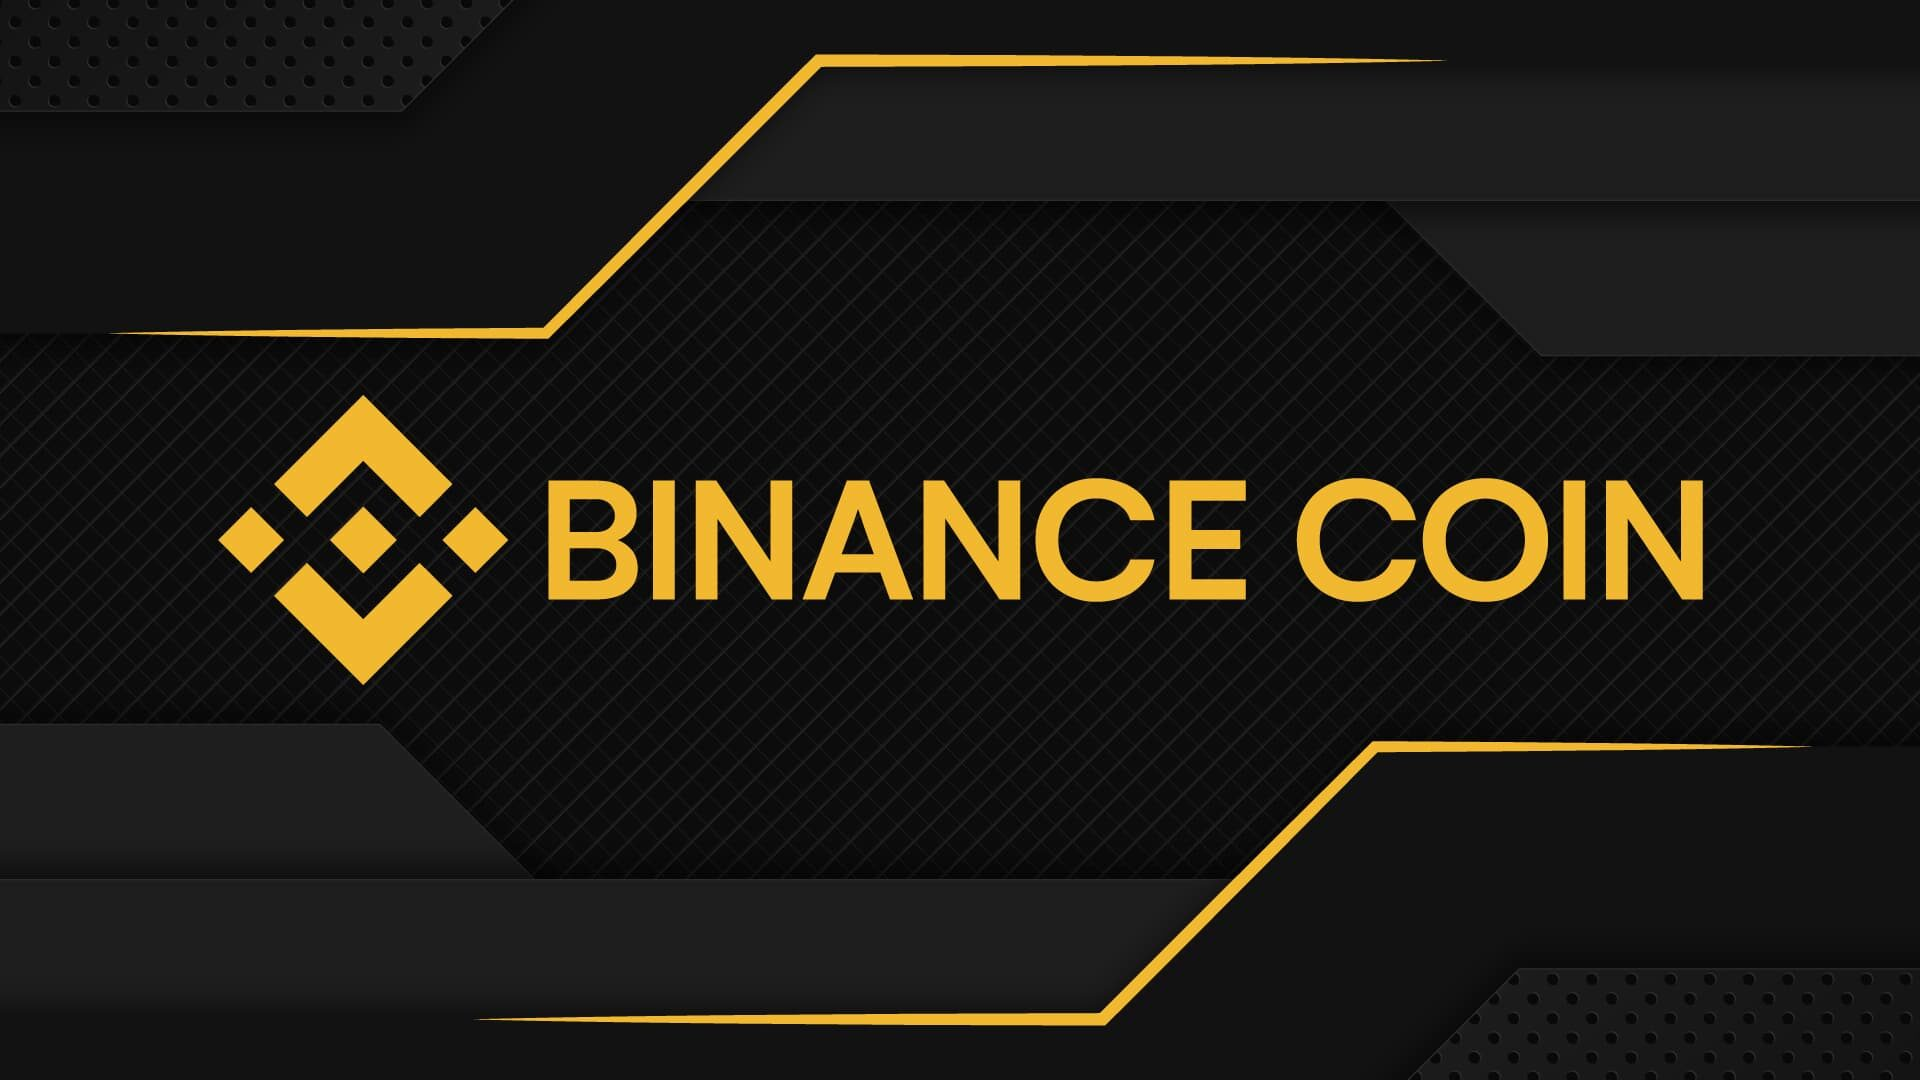 Experts Speculation on Binance Coin Price